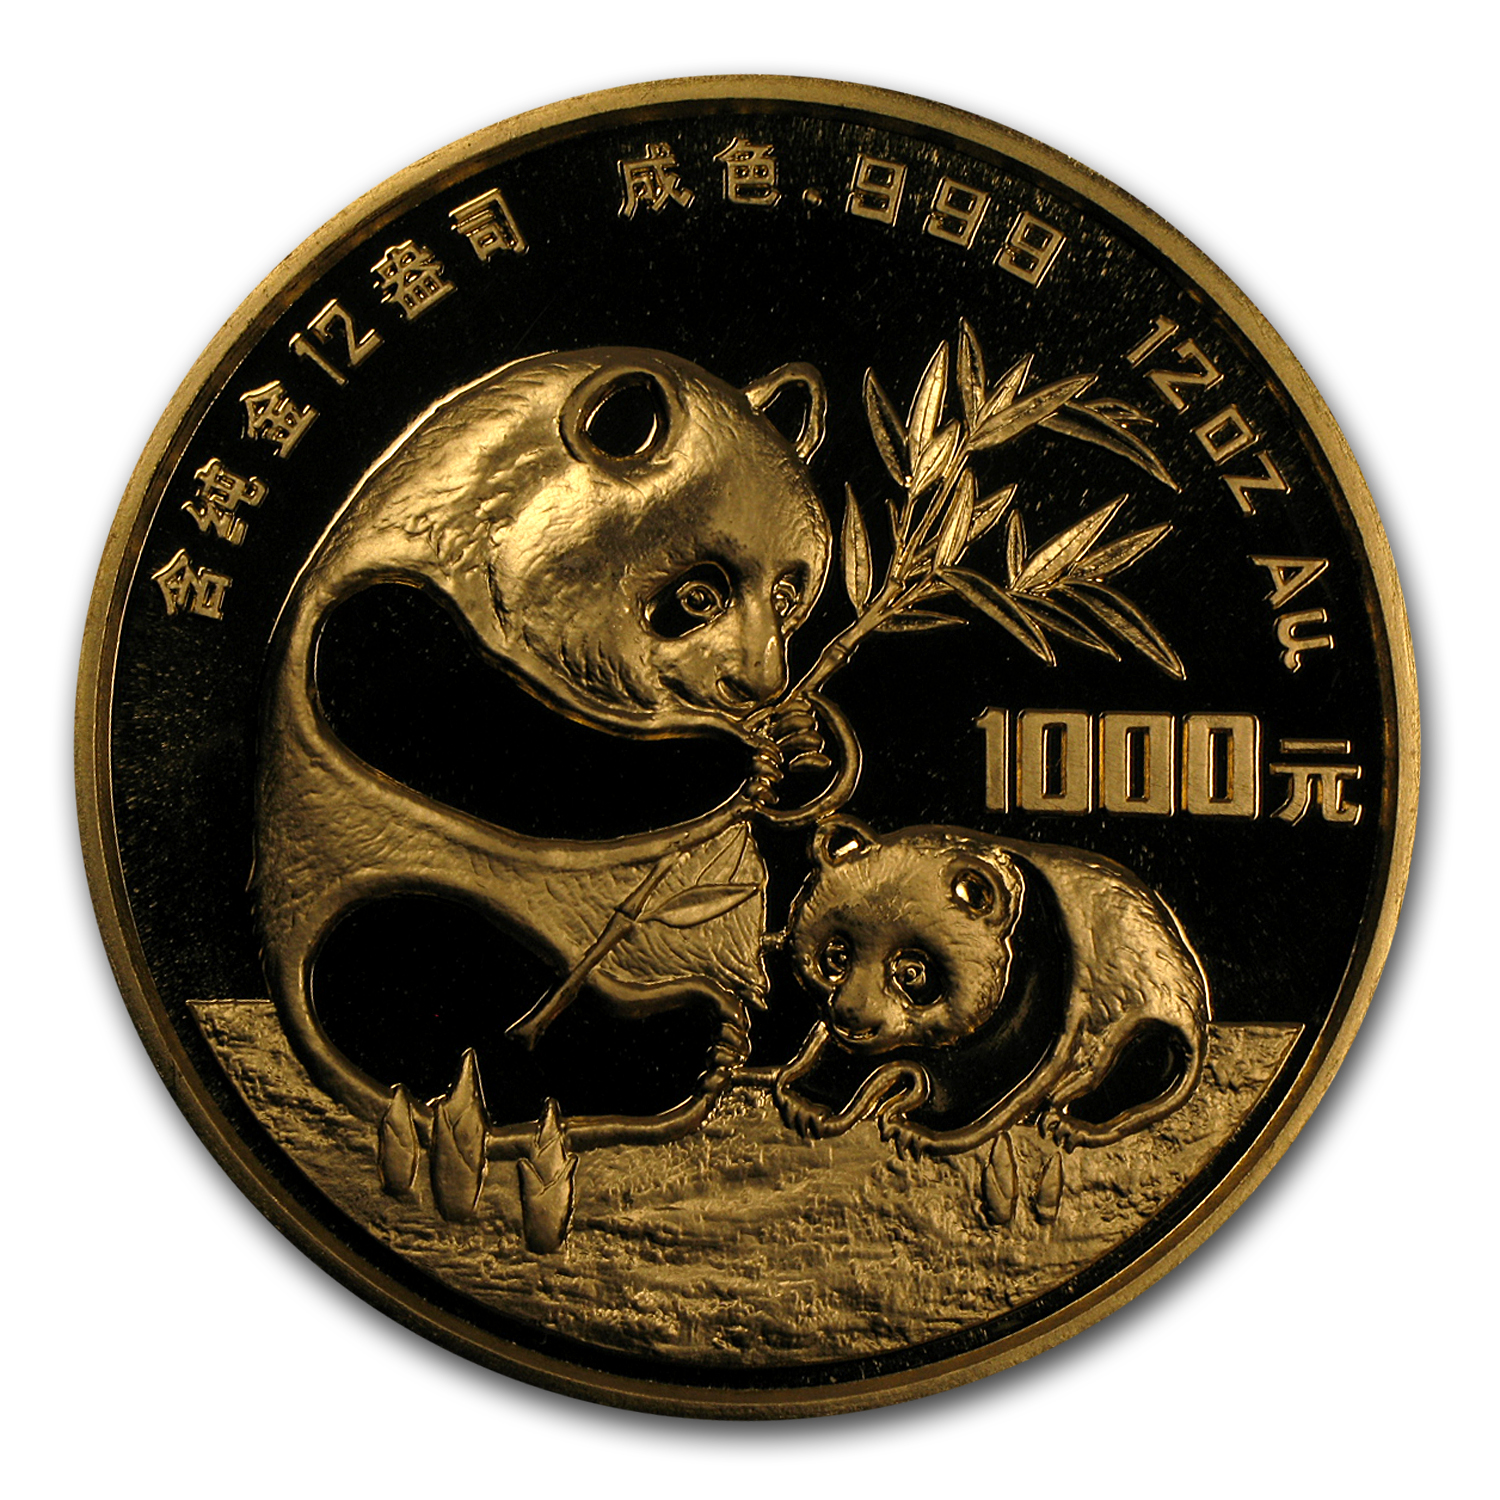 1986 China 12 oz Gold Panda Proof (w/Box and COA)